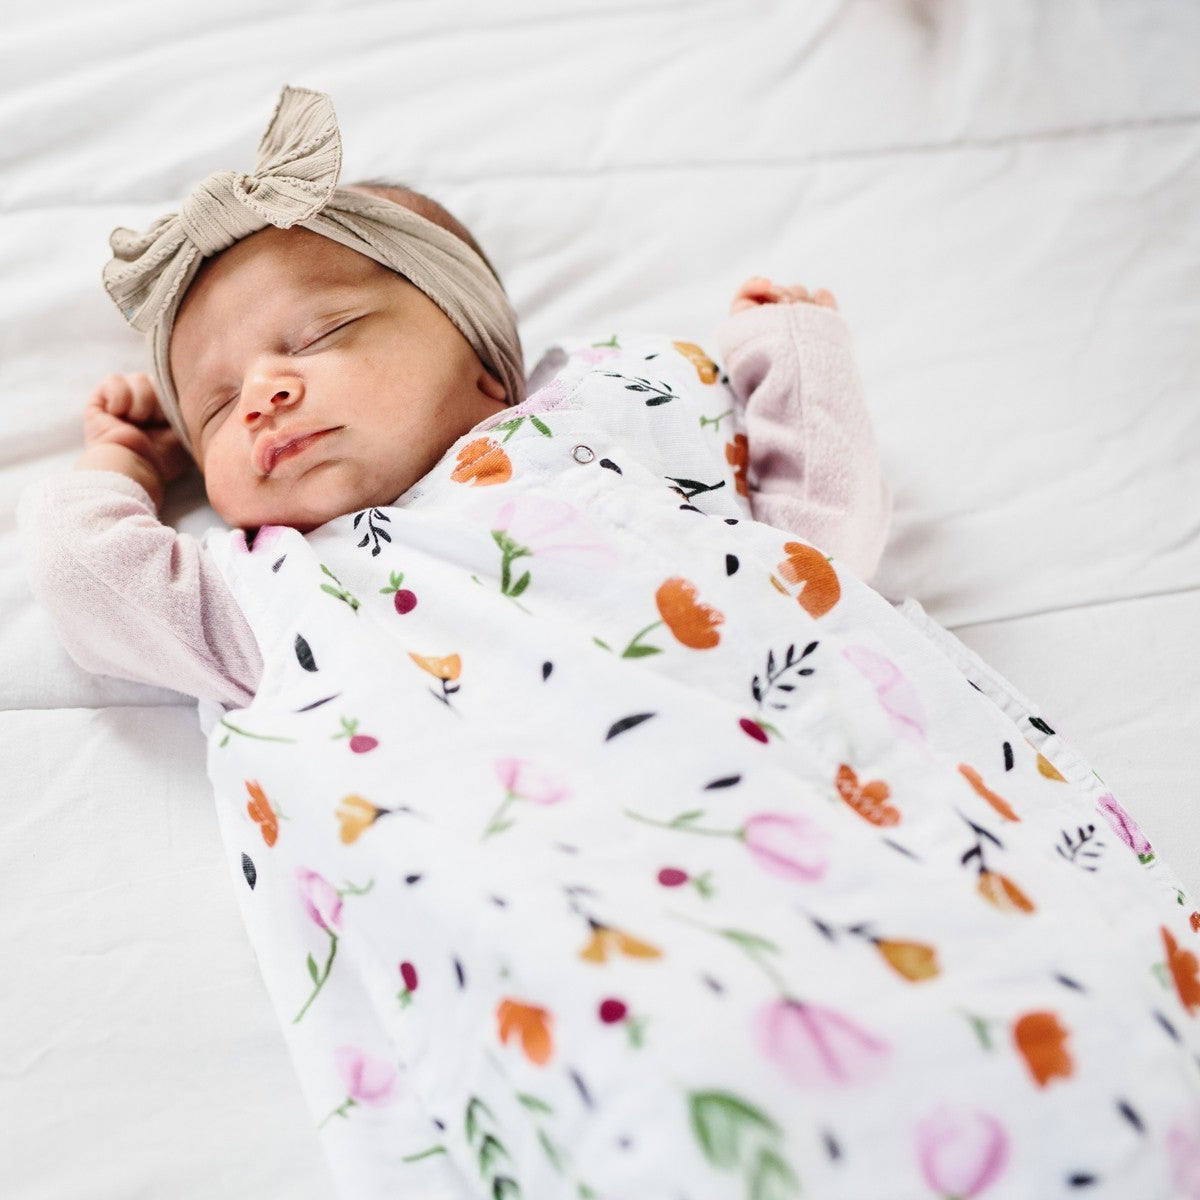 COTTON MUSLIN SLEEP SACK - BERRY AND BLOOM - Made by McNamara